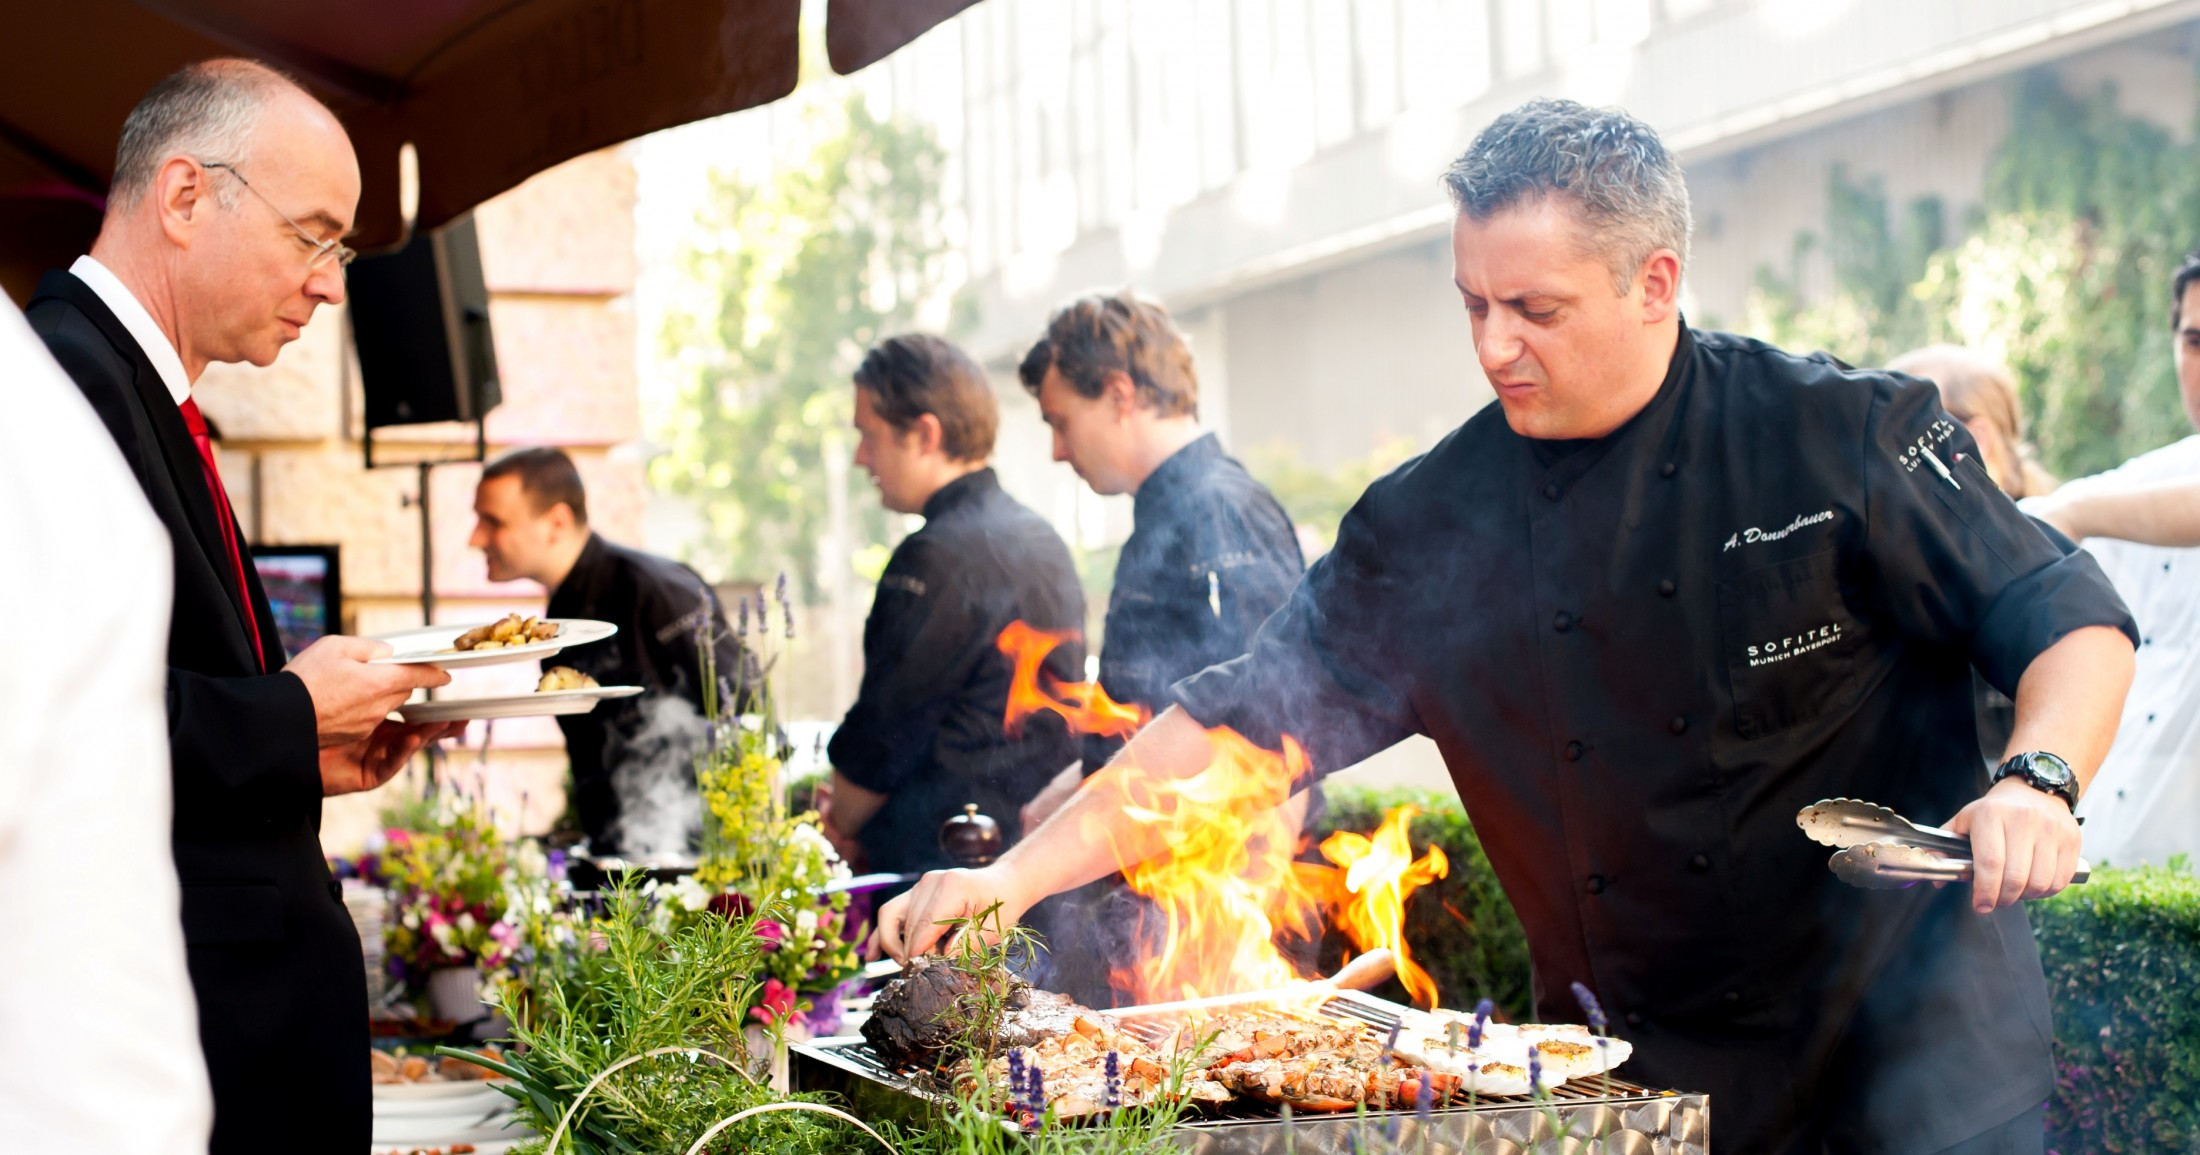 barbecue-on-the-delice-la-brasserie-terrace